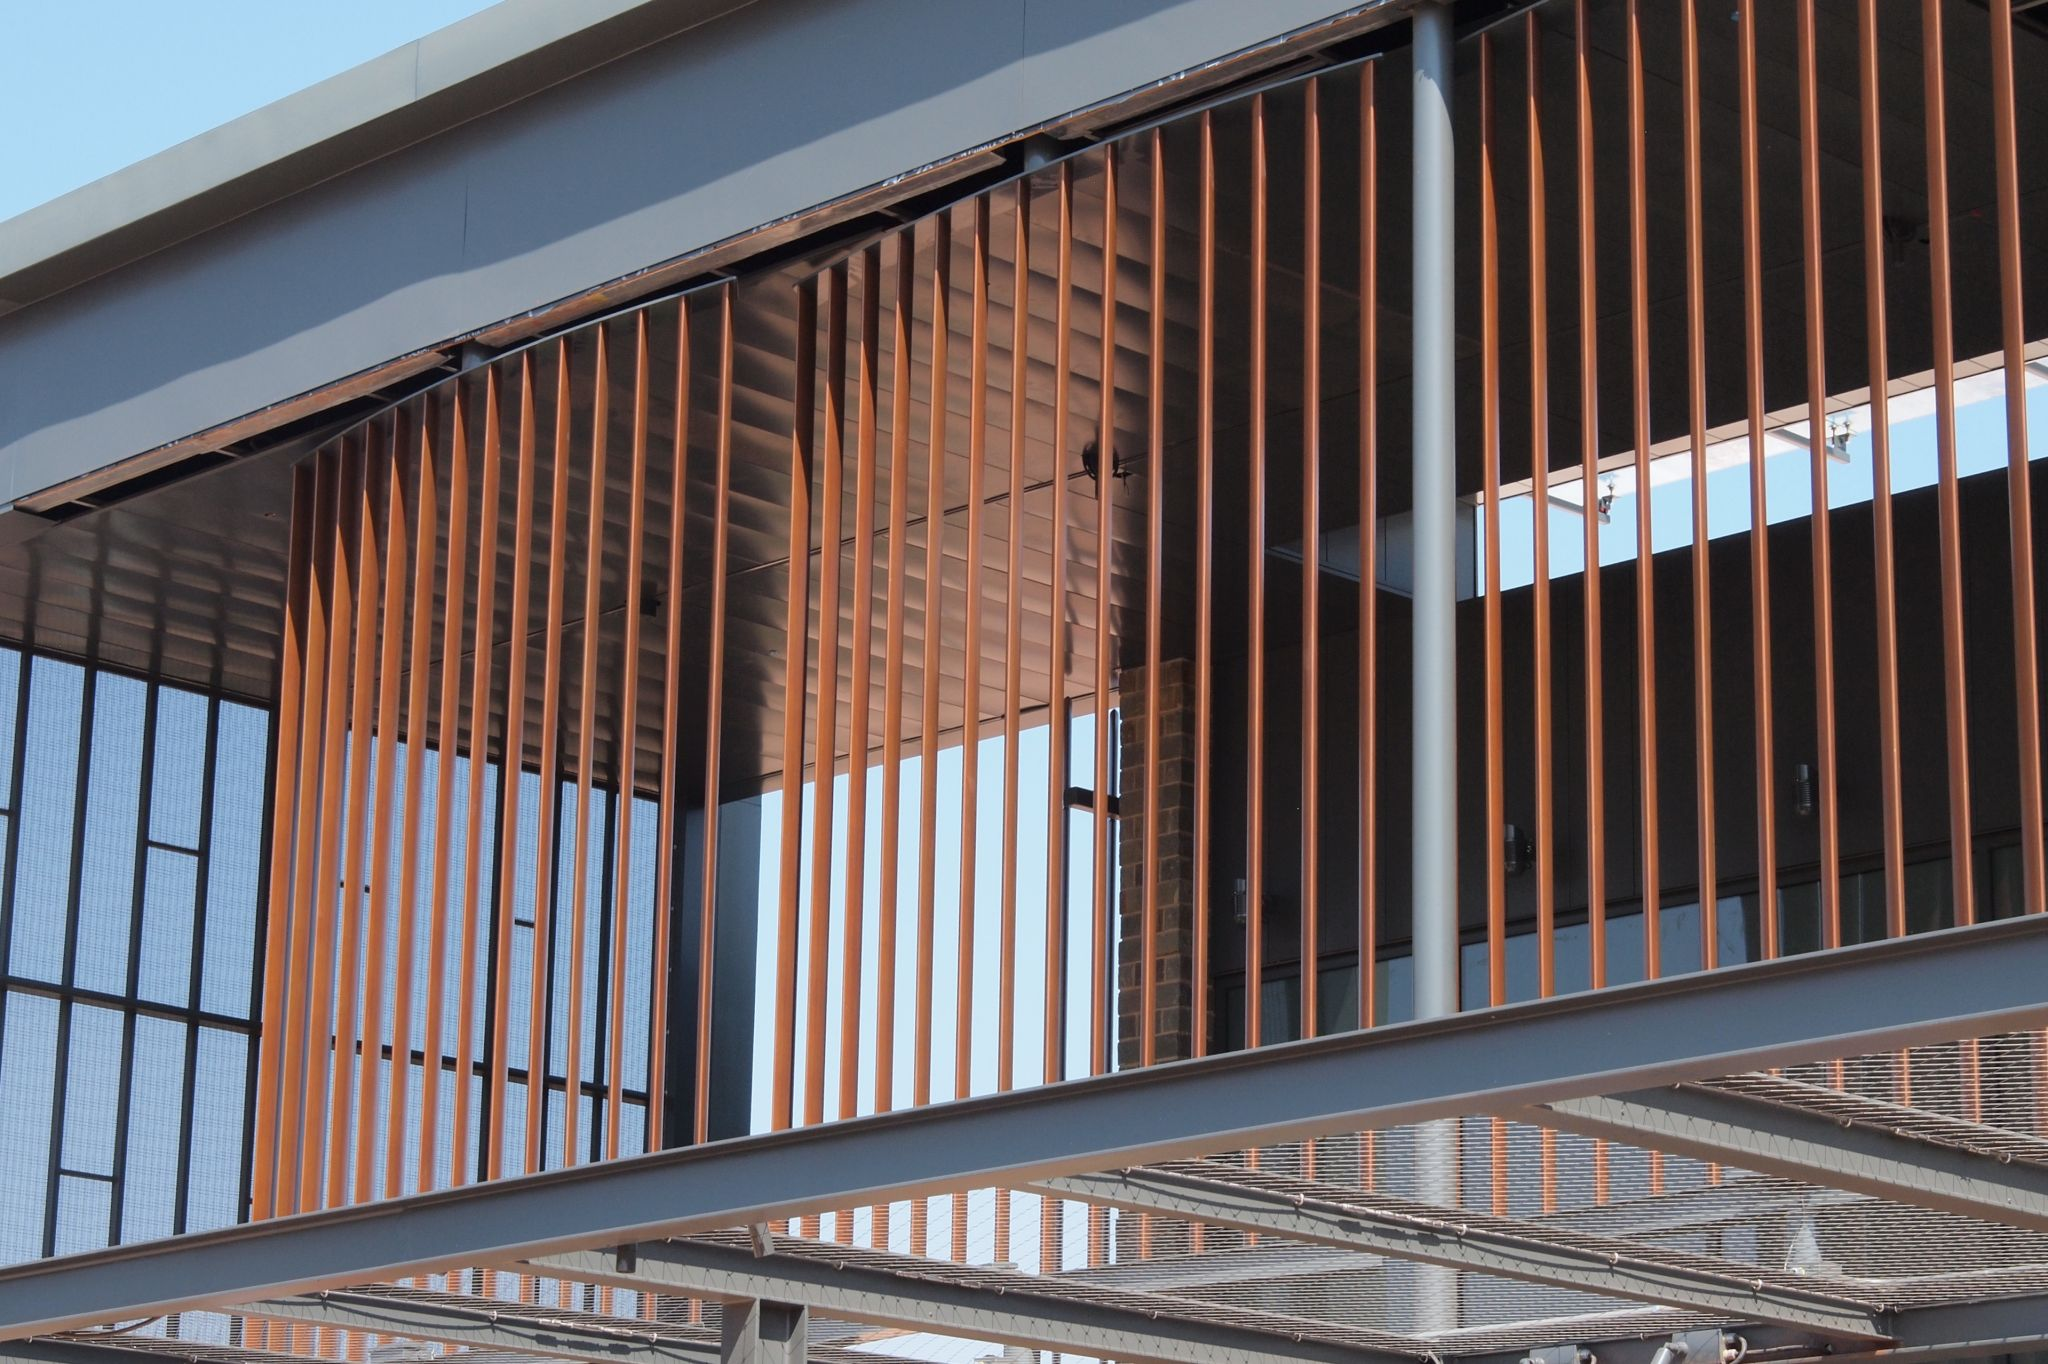 10 key questions about exterior shading - Construction Specifier